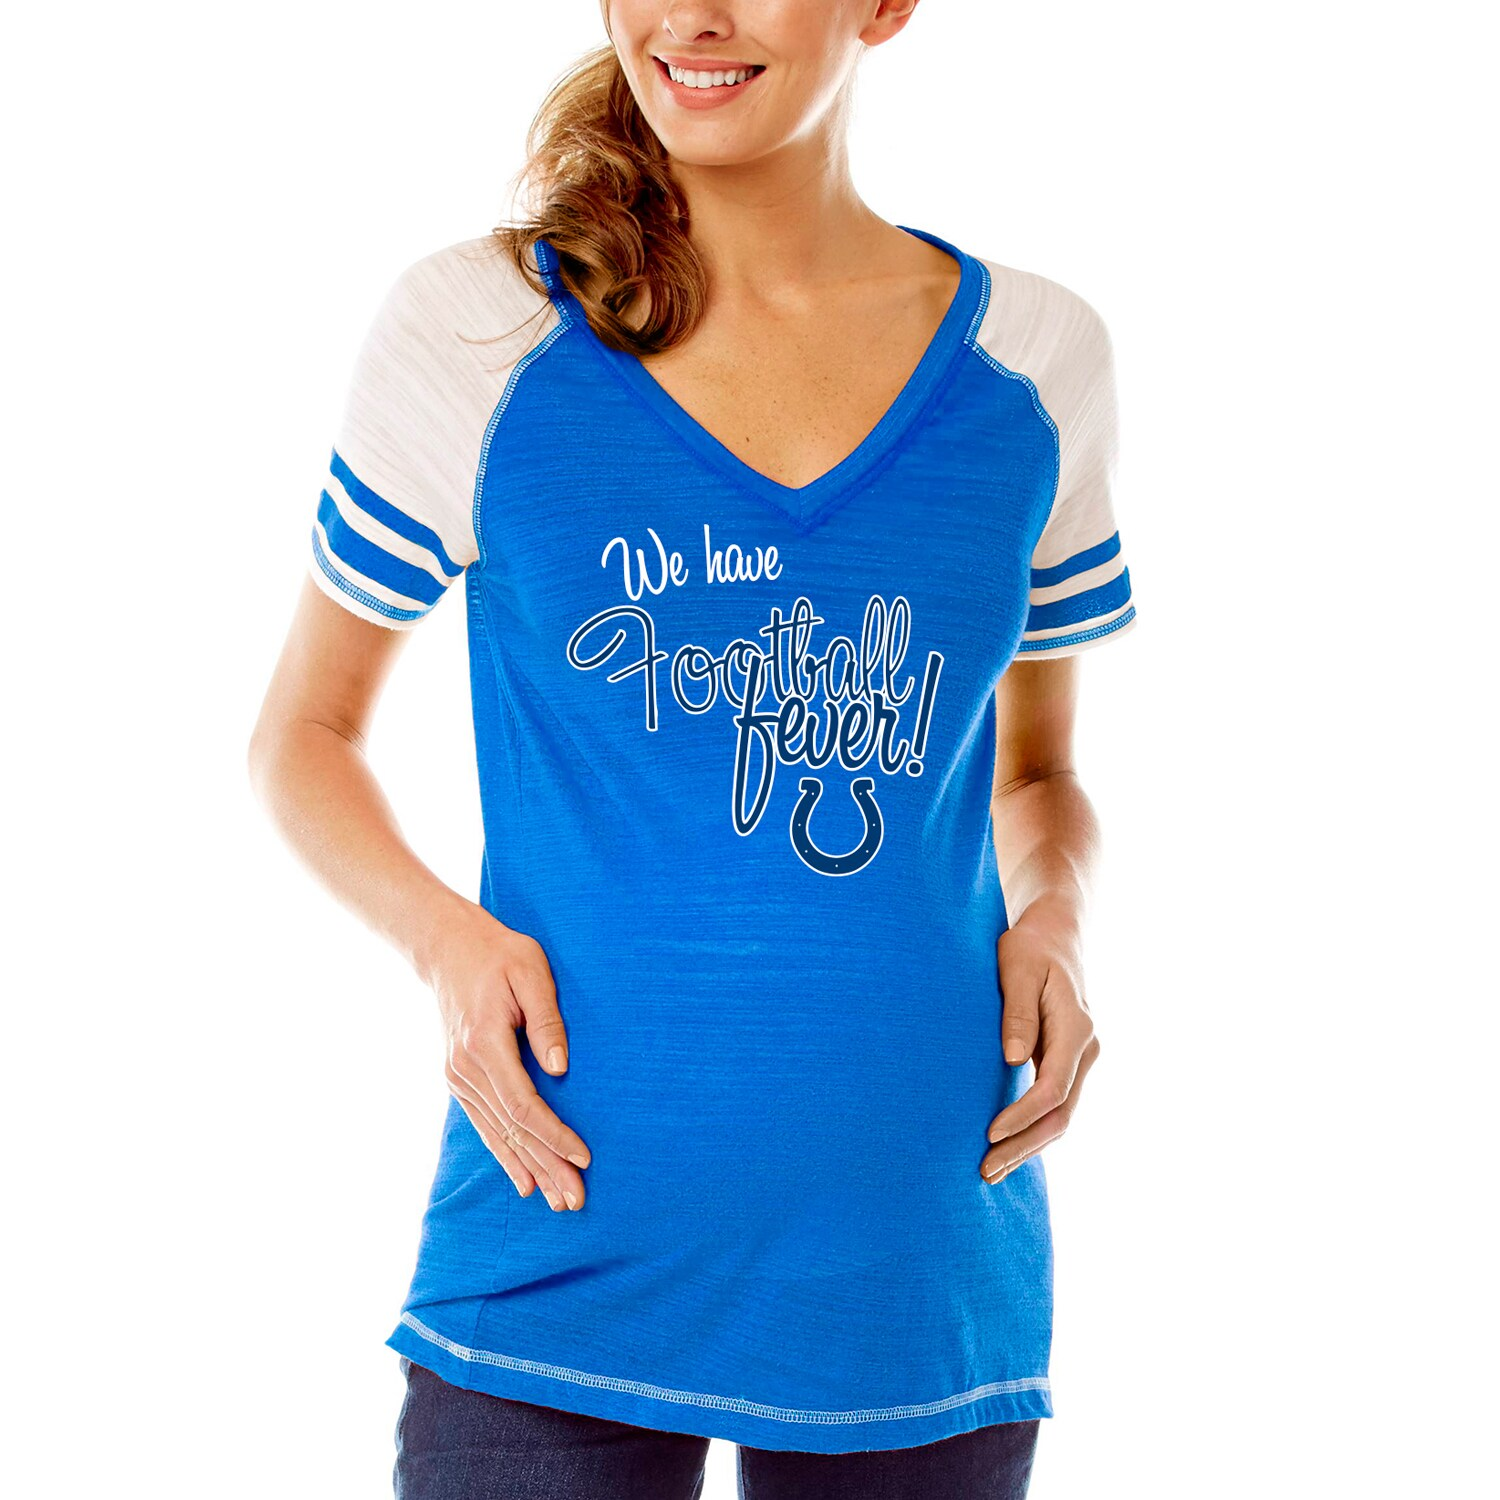 Indianapolis Colts Soft as a Grape Women's Maternity Football Fever V-Neck T-Shirt - Royal